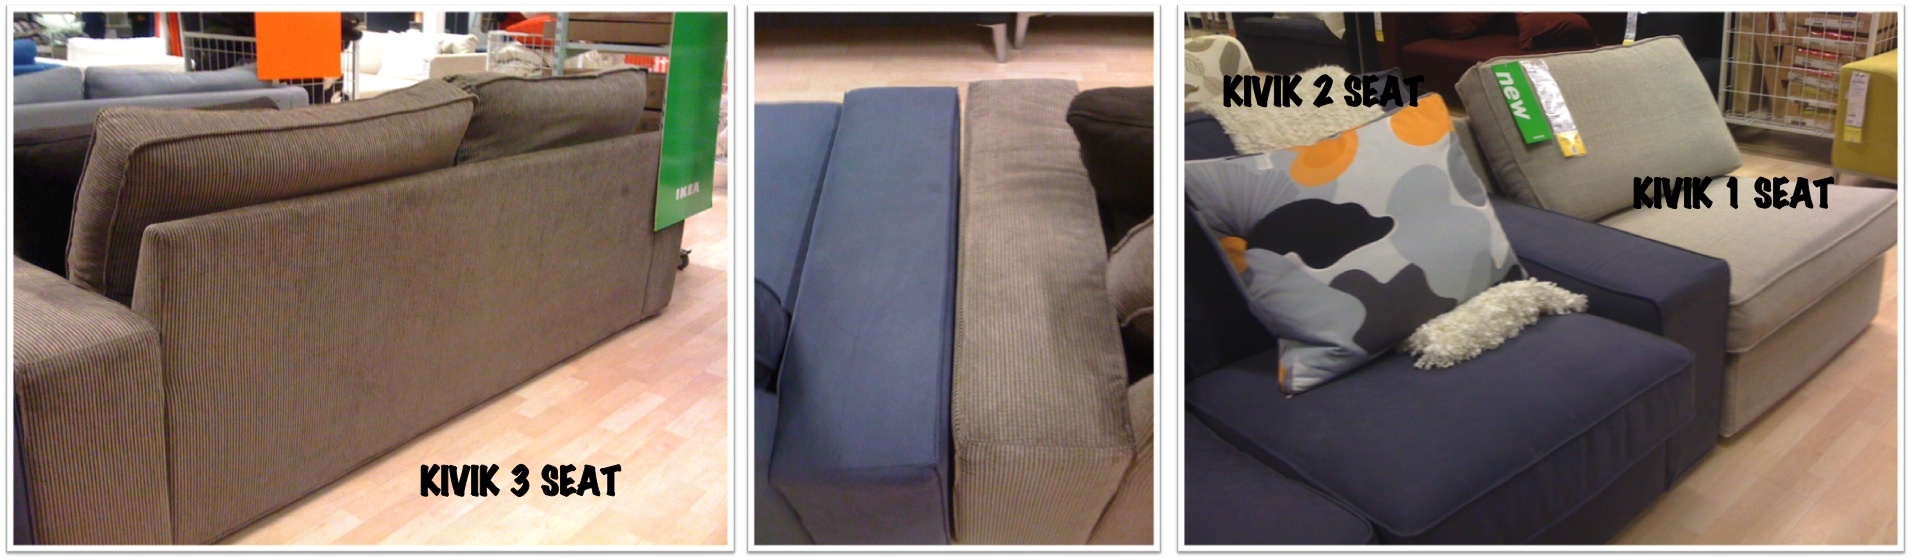 IKEA Kivik Sofa Series Review Comfort Works Blog